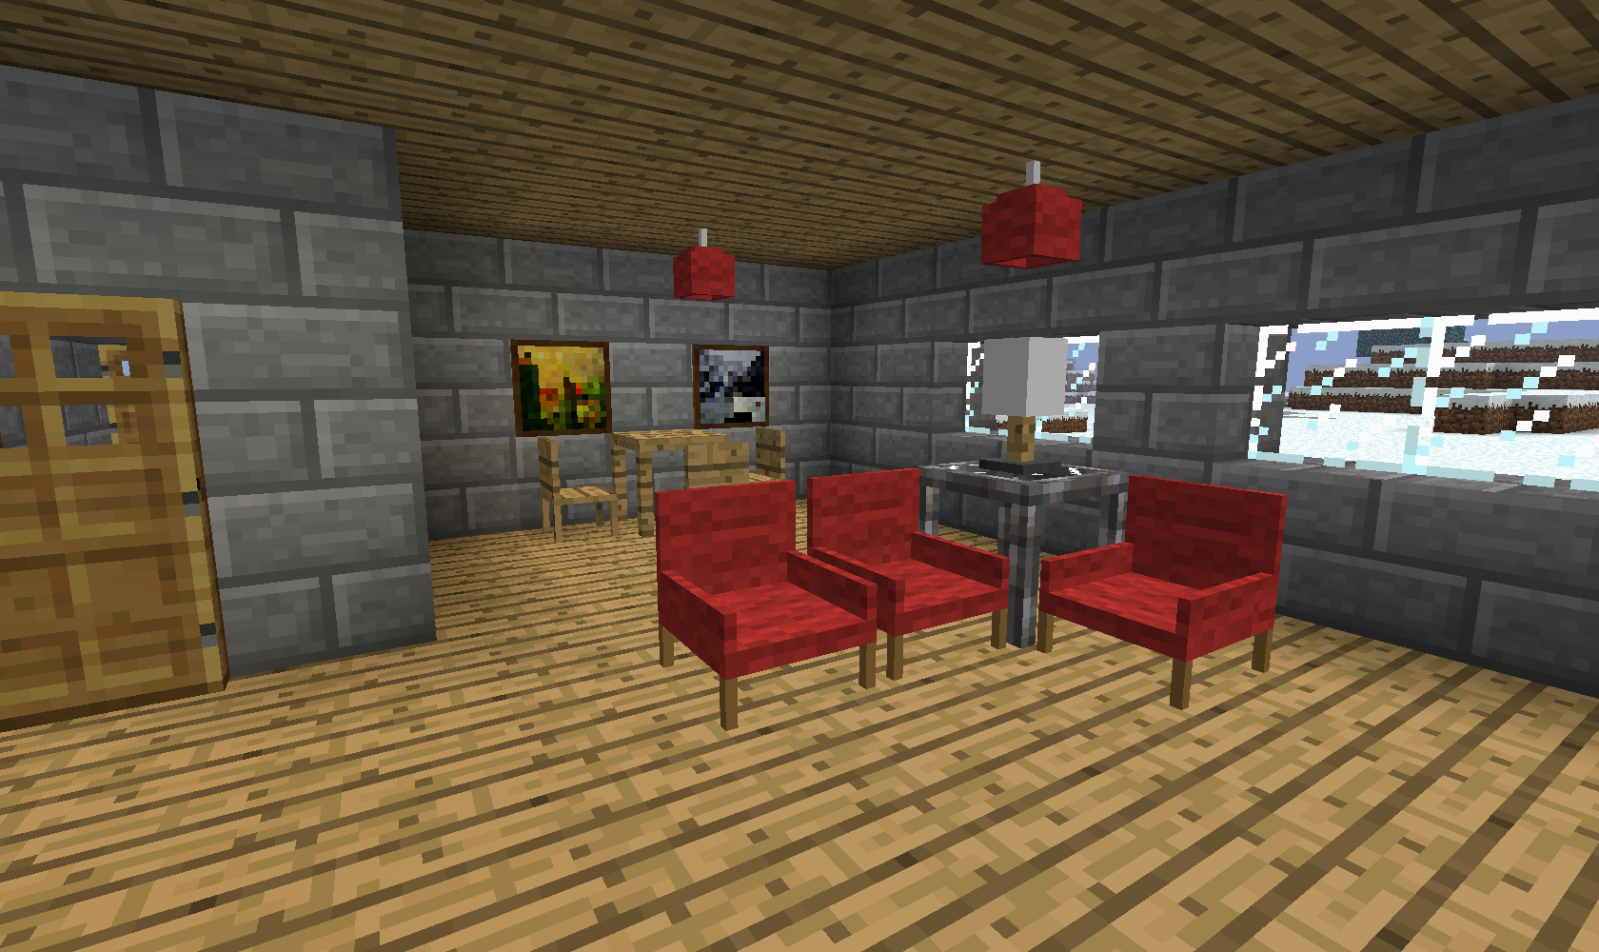 http://www.beginminecraft.com/wp-content/uploads/2013/05/Jammy-Furniture-Mod-412.png